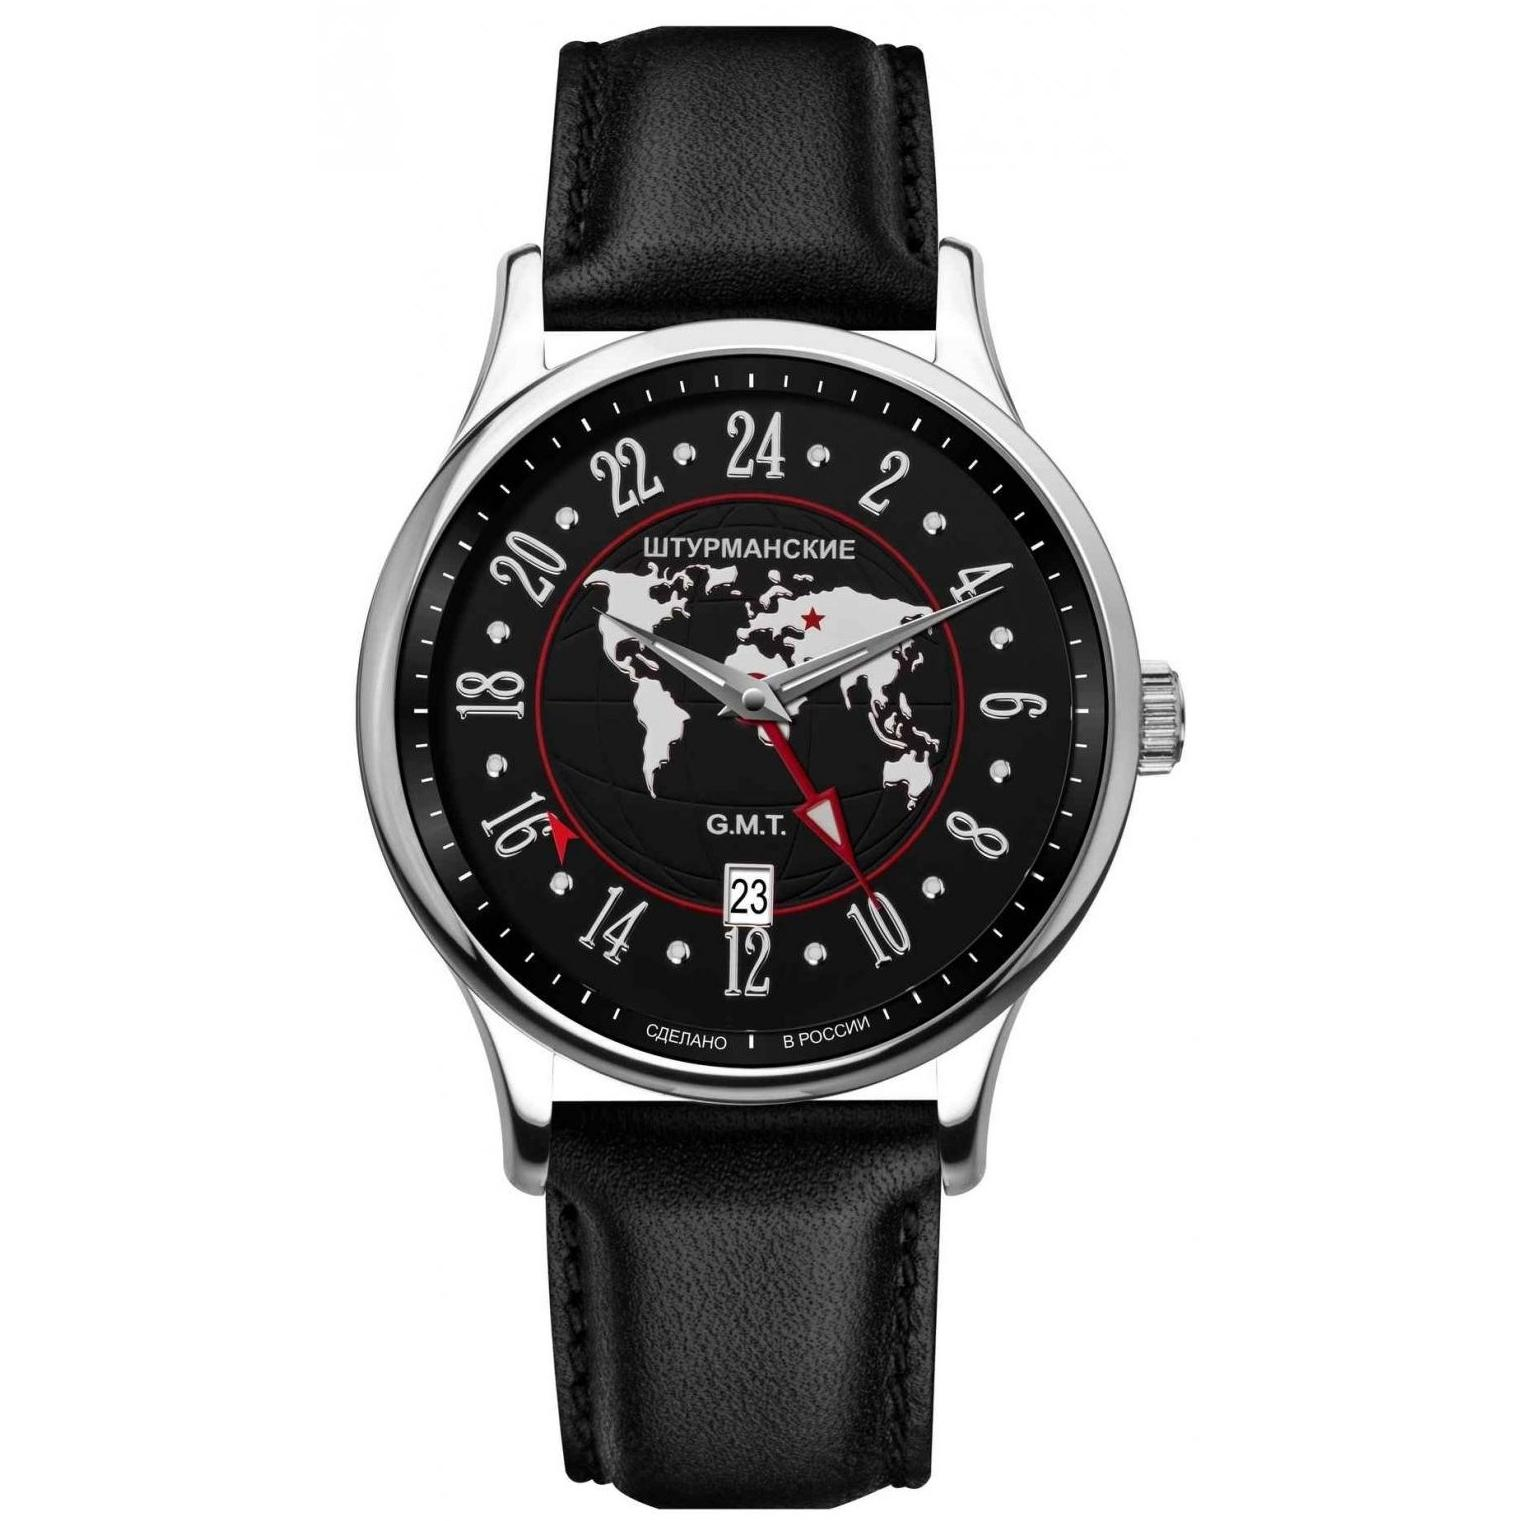 Ceas Sturmanskie SPUTNIK - GMT 51524/3301803